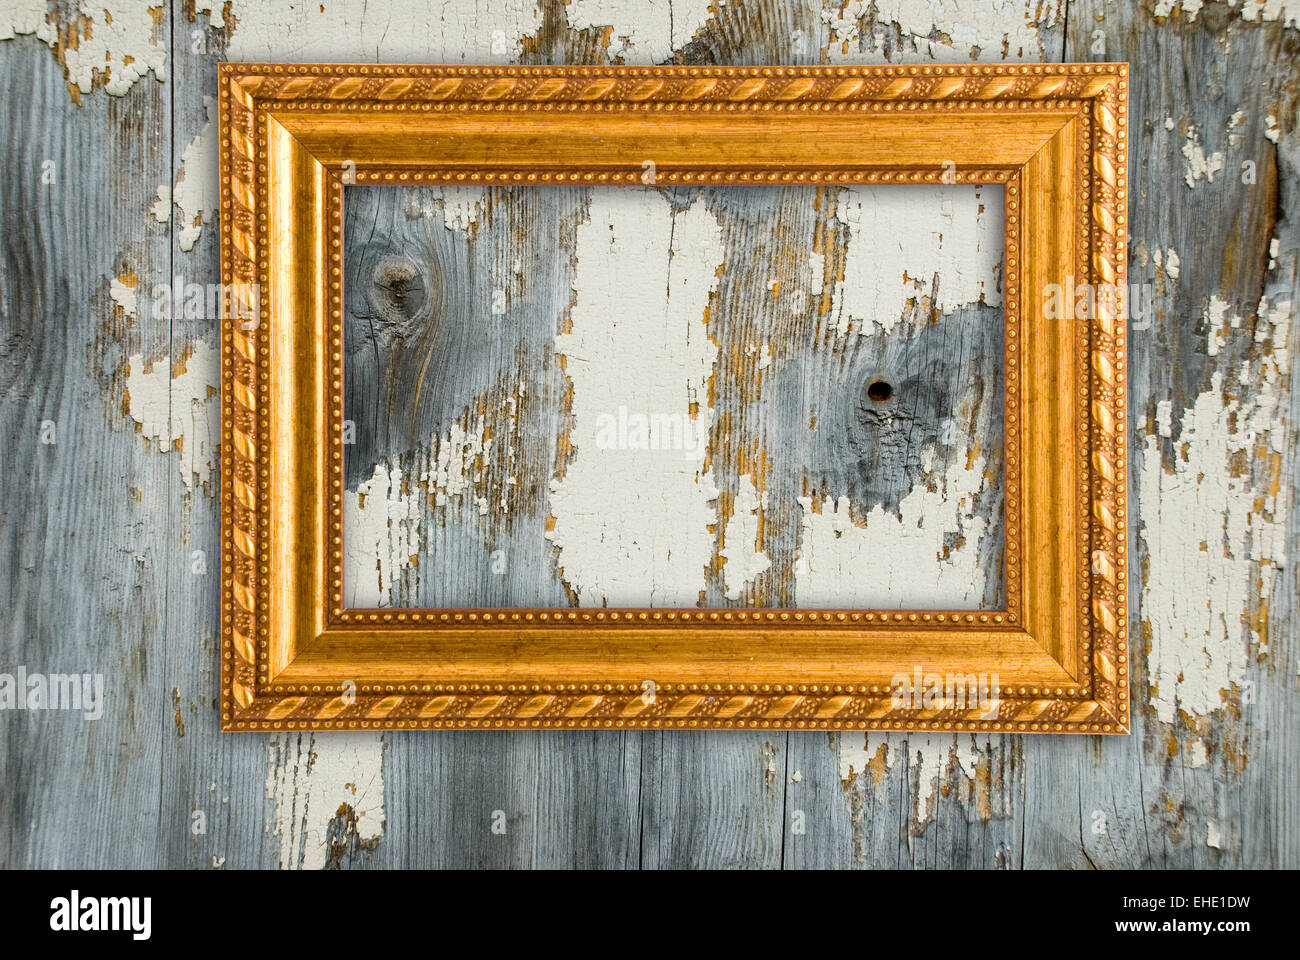 Gold frame on a old wooden wall background Stock Photo: 79599125 - Alamy